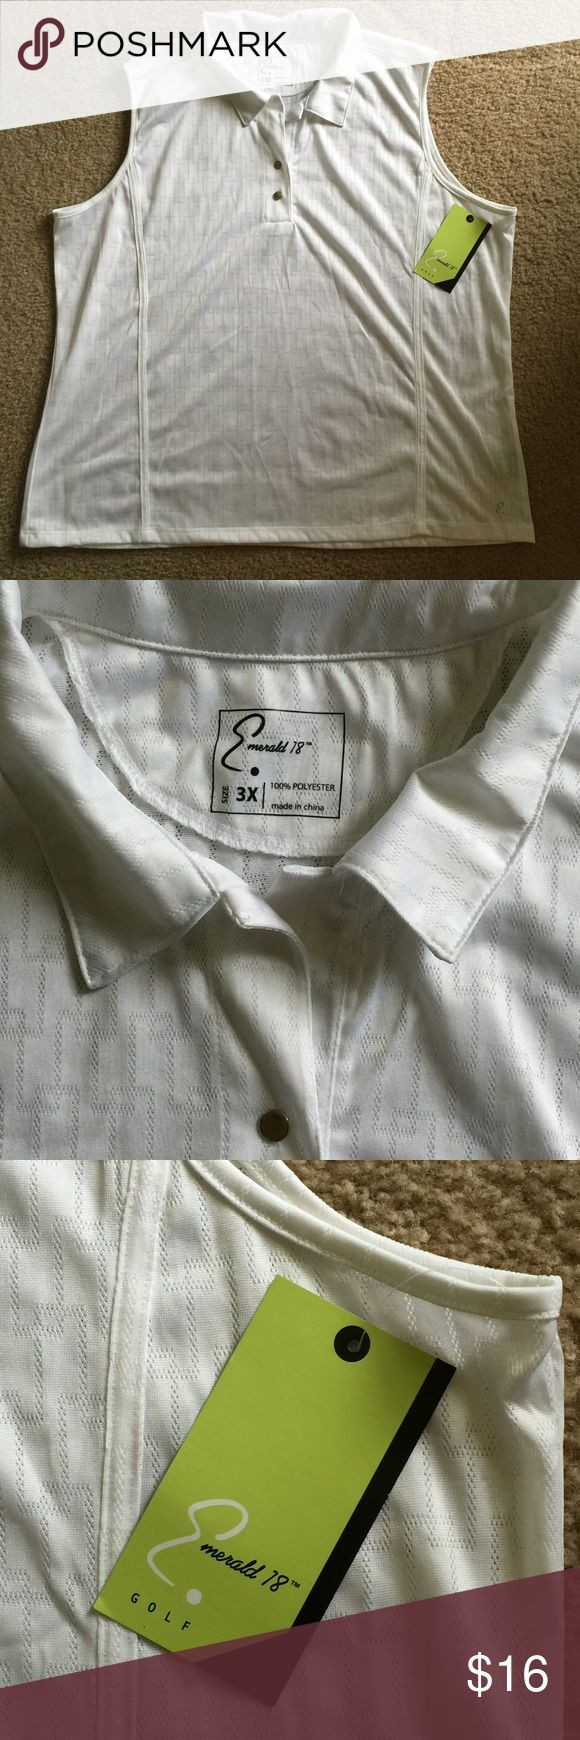 """NWT GOLF ⛳️ SHIRT PLUS SIZE 3X, BRAND NEW This shirt is brand-new and in perfect condition with tags attached. It is 100% white polyester with stretch. Plus size 3X.  Measurements are; 25"""" pit to pit and 28"""" back neck to bottom. No additional discount unless bundling. Emerald 18 Tops"""